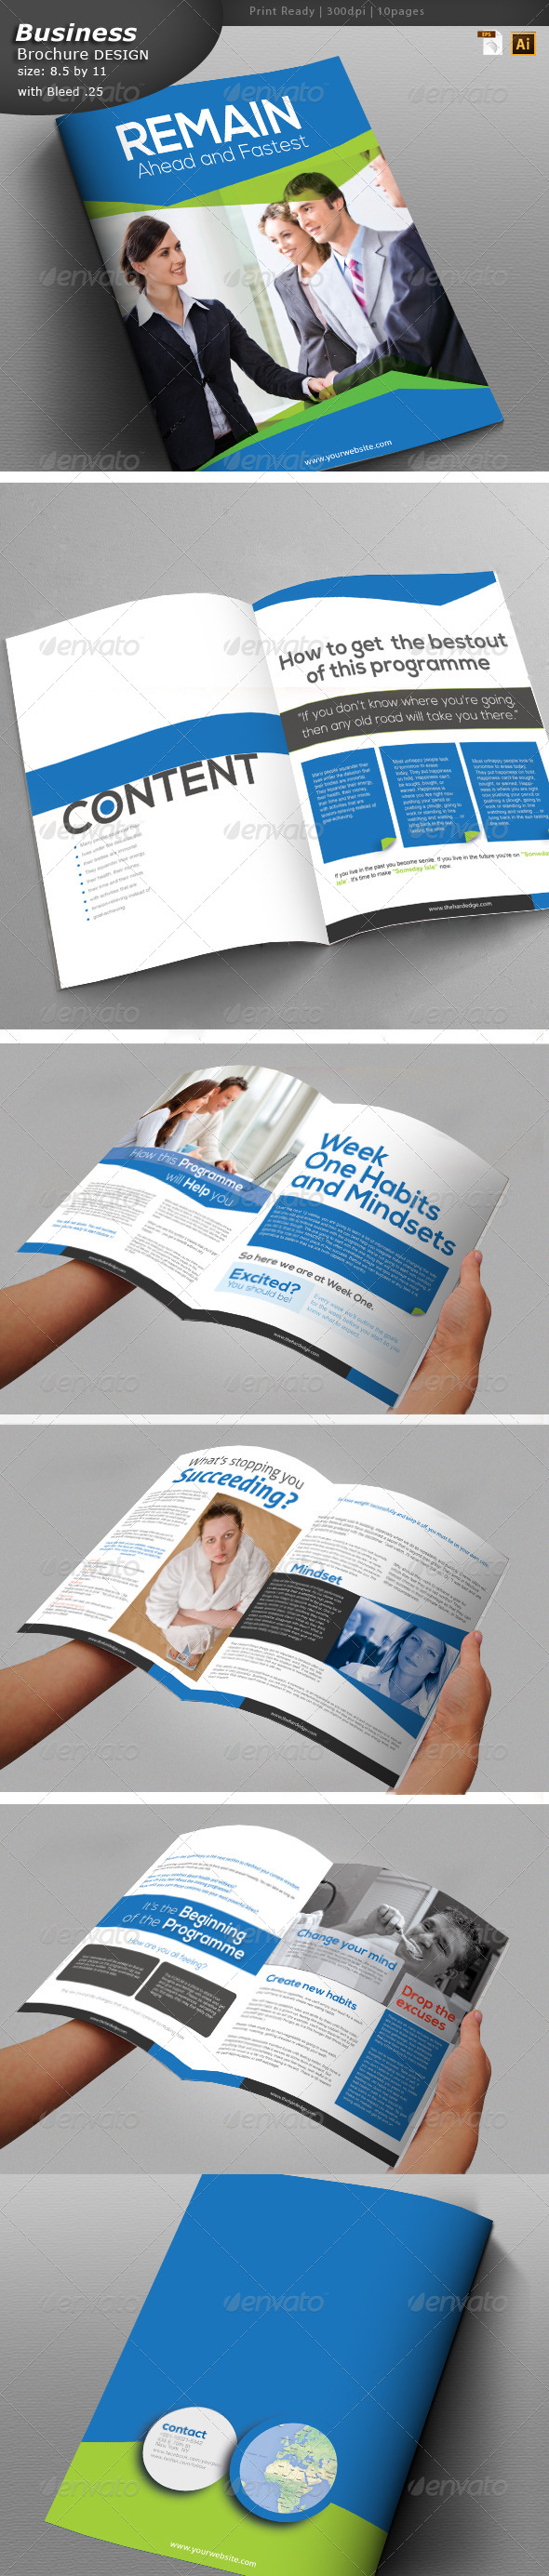 GraphicRiver Personality Building Brochure Design 6157897